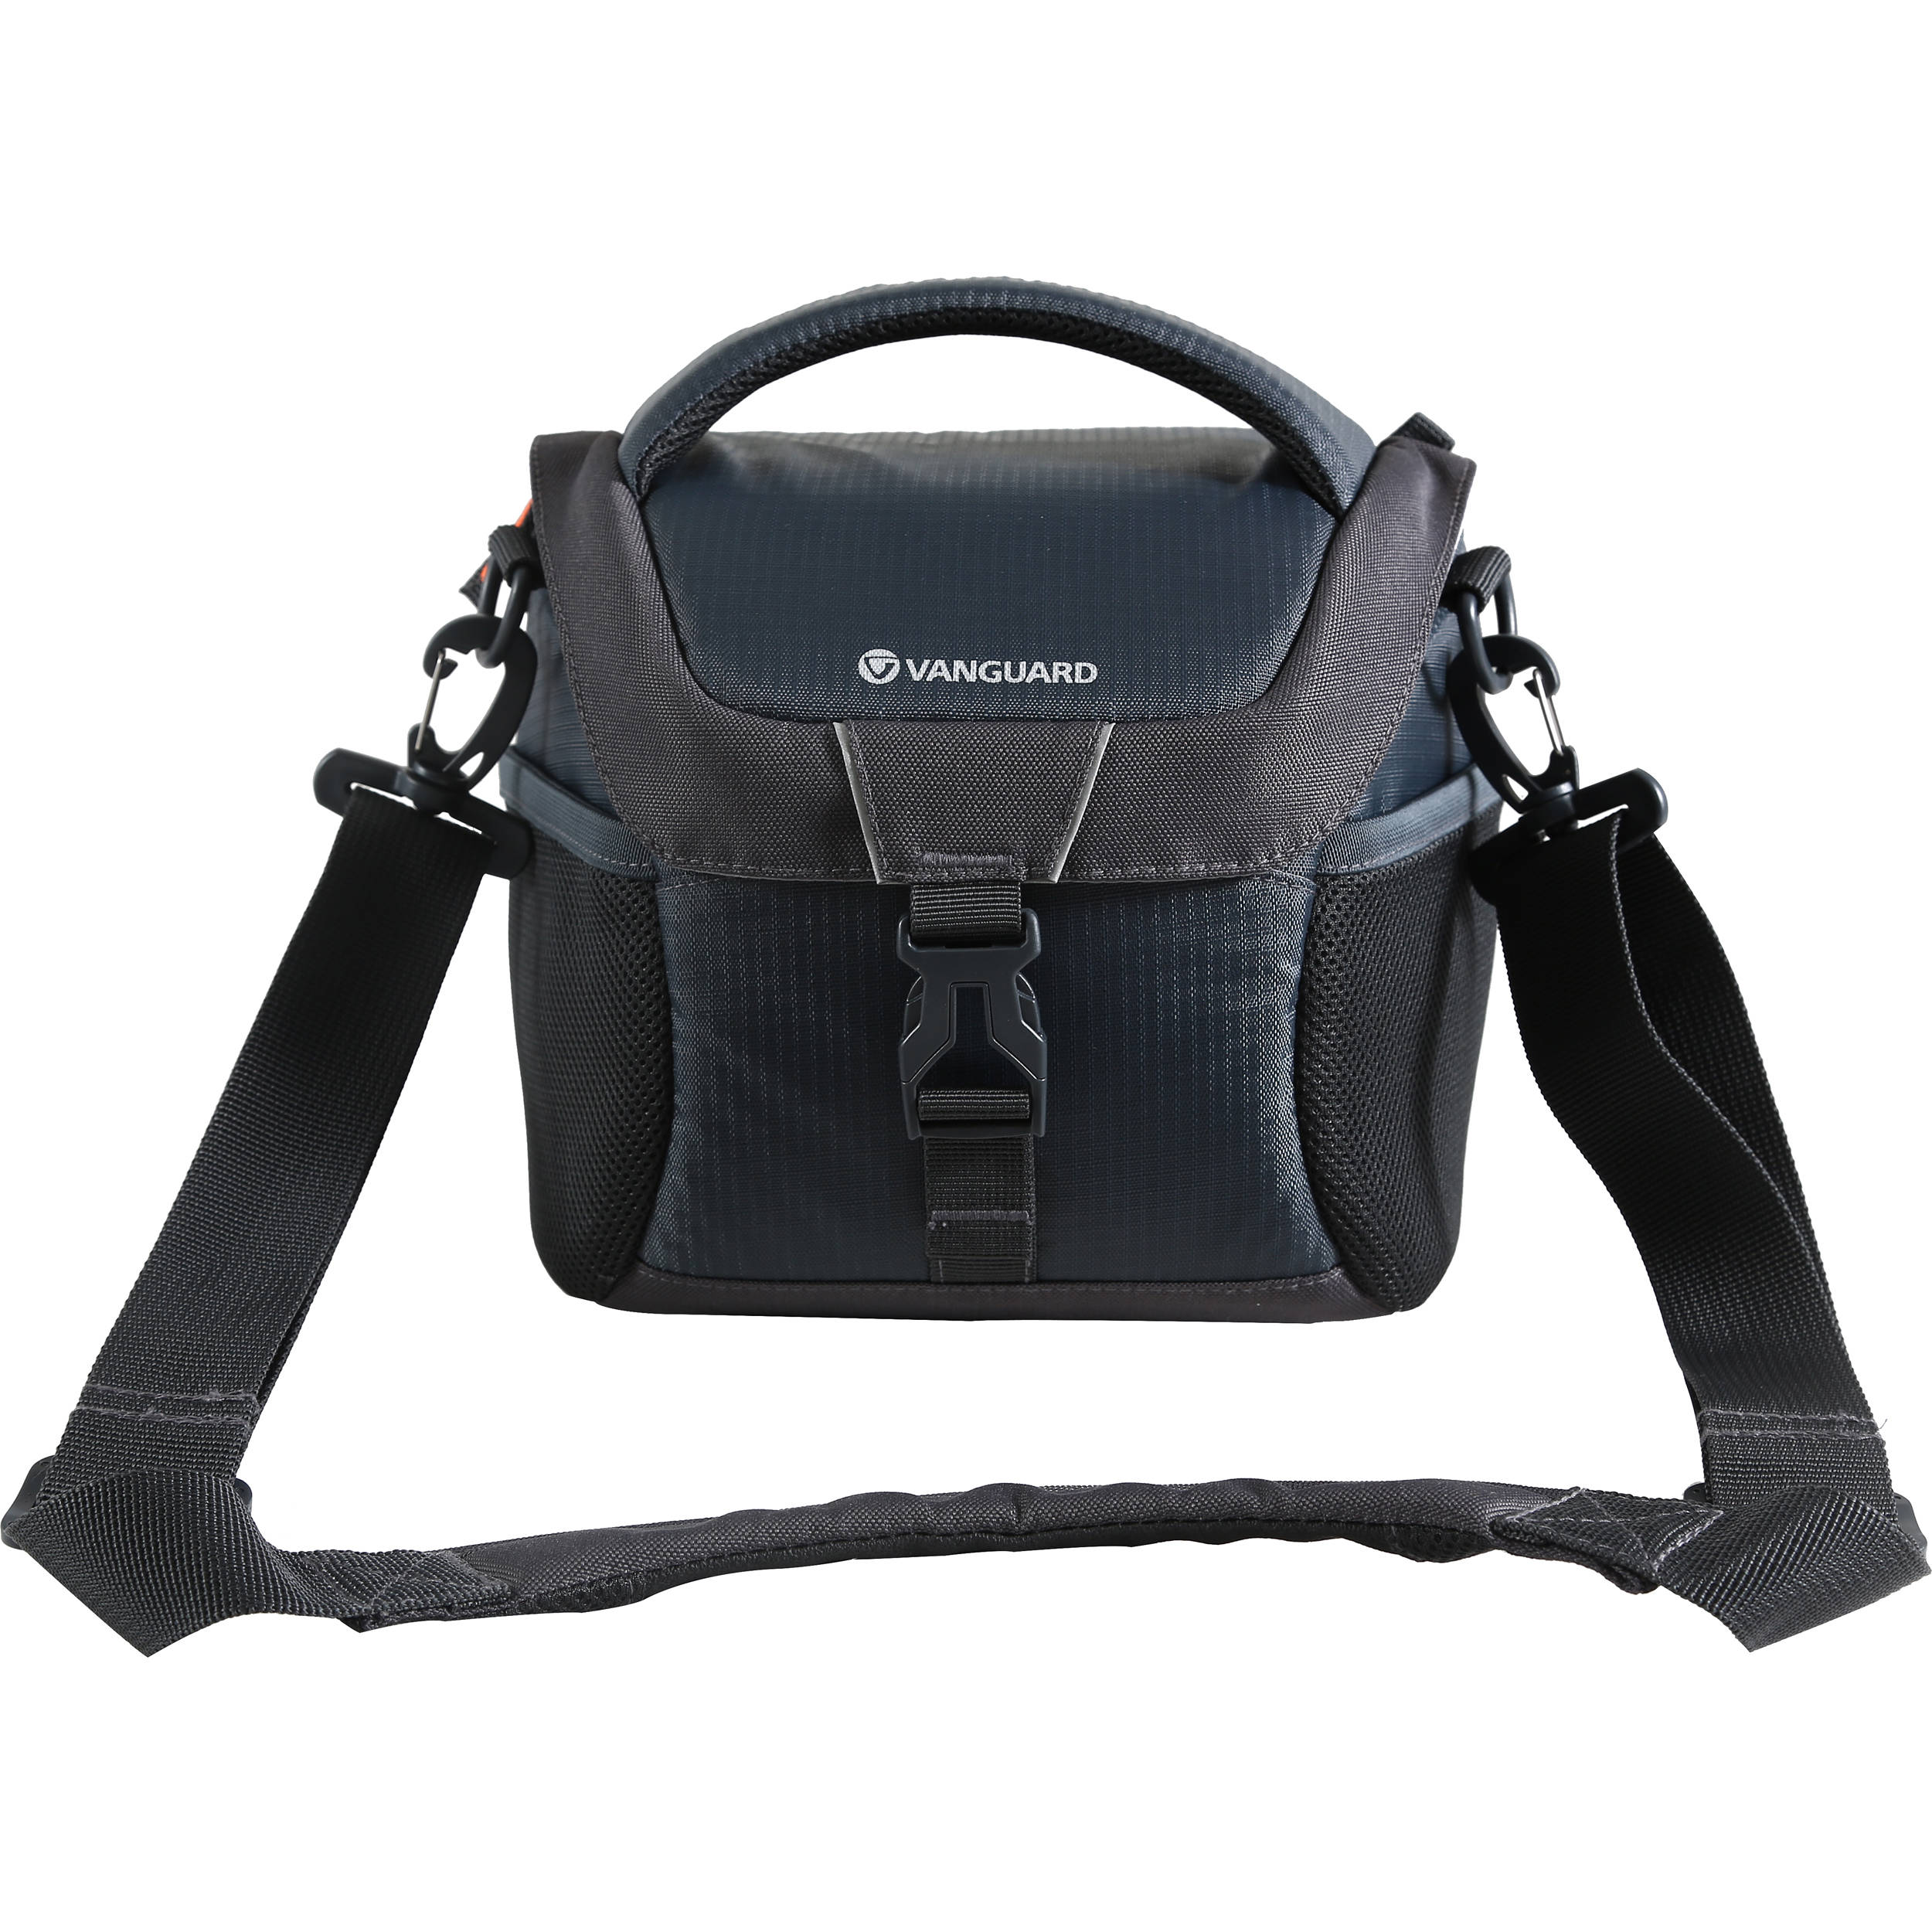 Vanguard Adaptor 22 Shoulder Bag (gray)